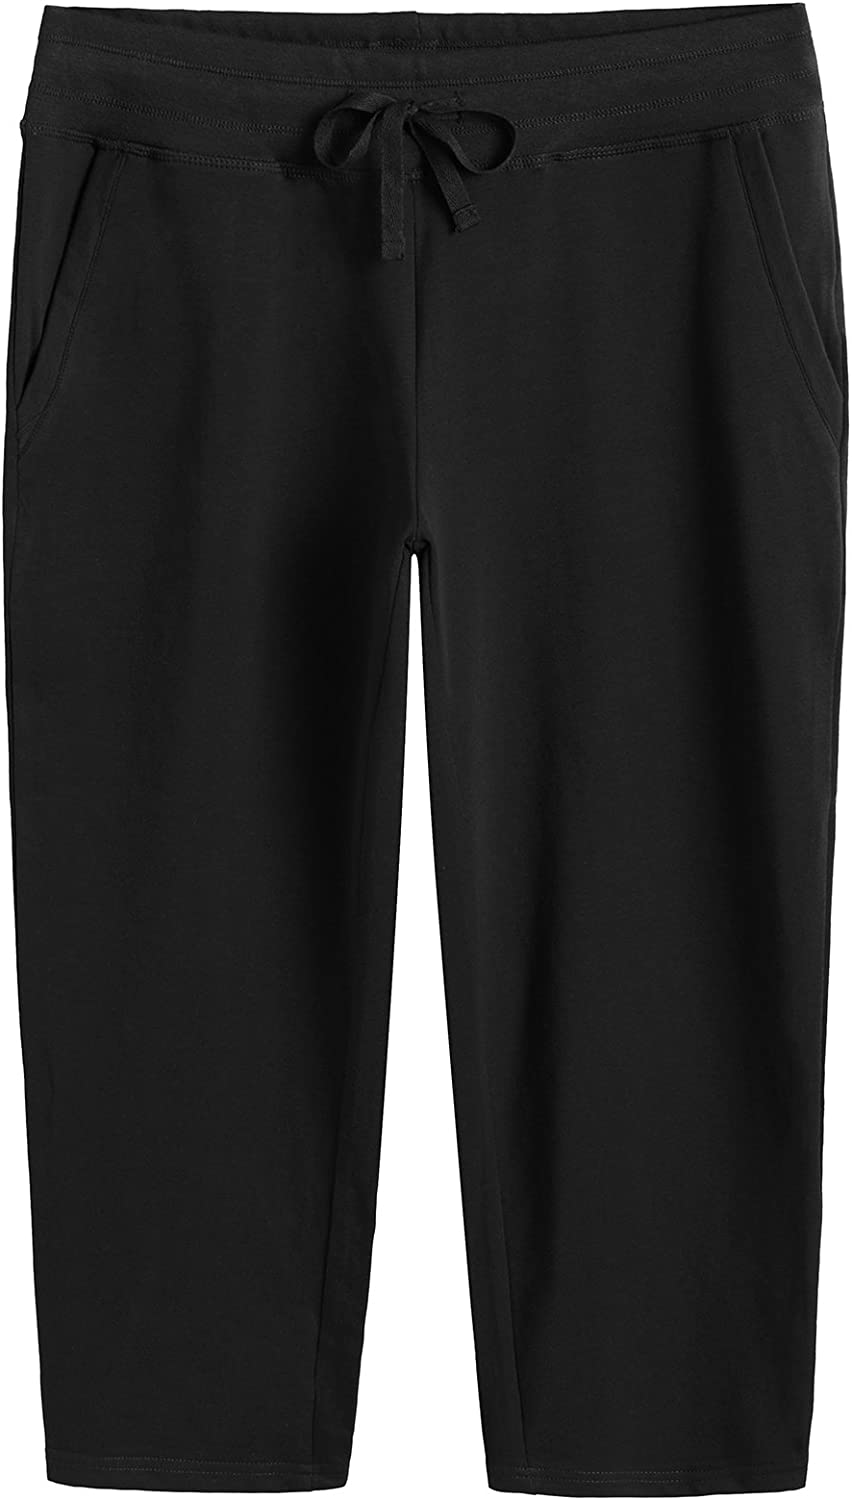 Weintee Women's Cotton Capri Pants with Pockets